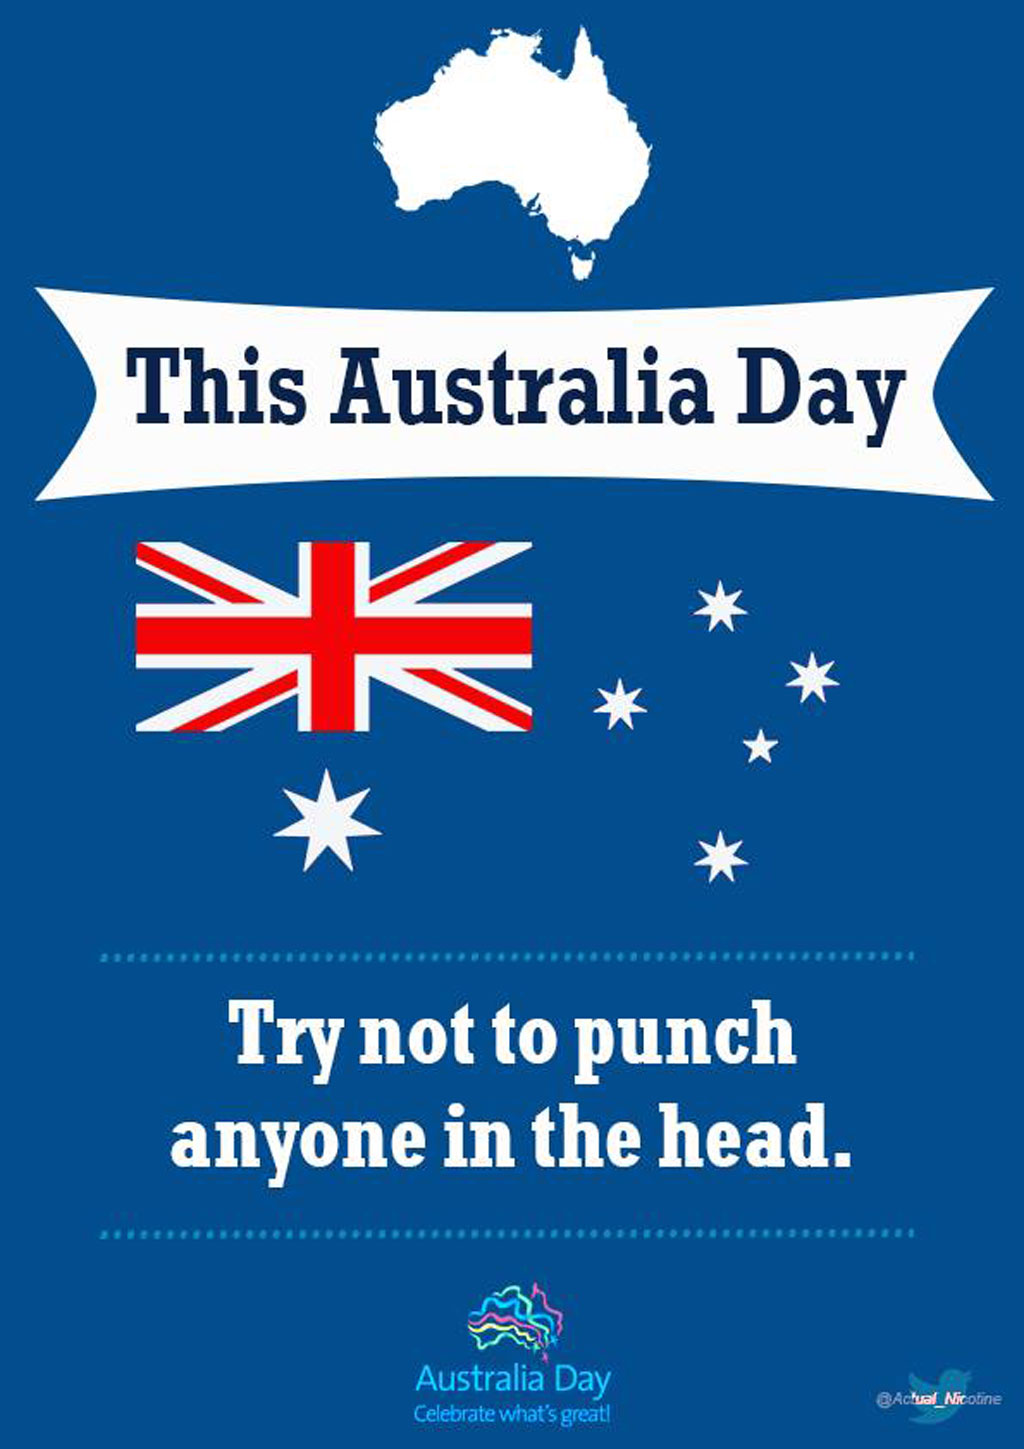 The simple message one man wants you to remember this Australia Day